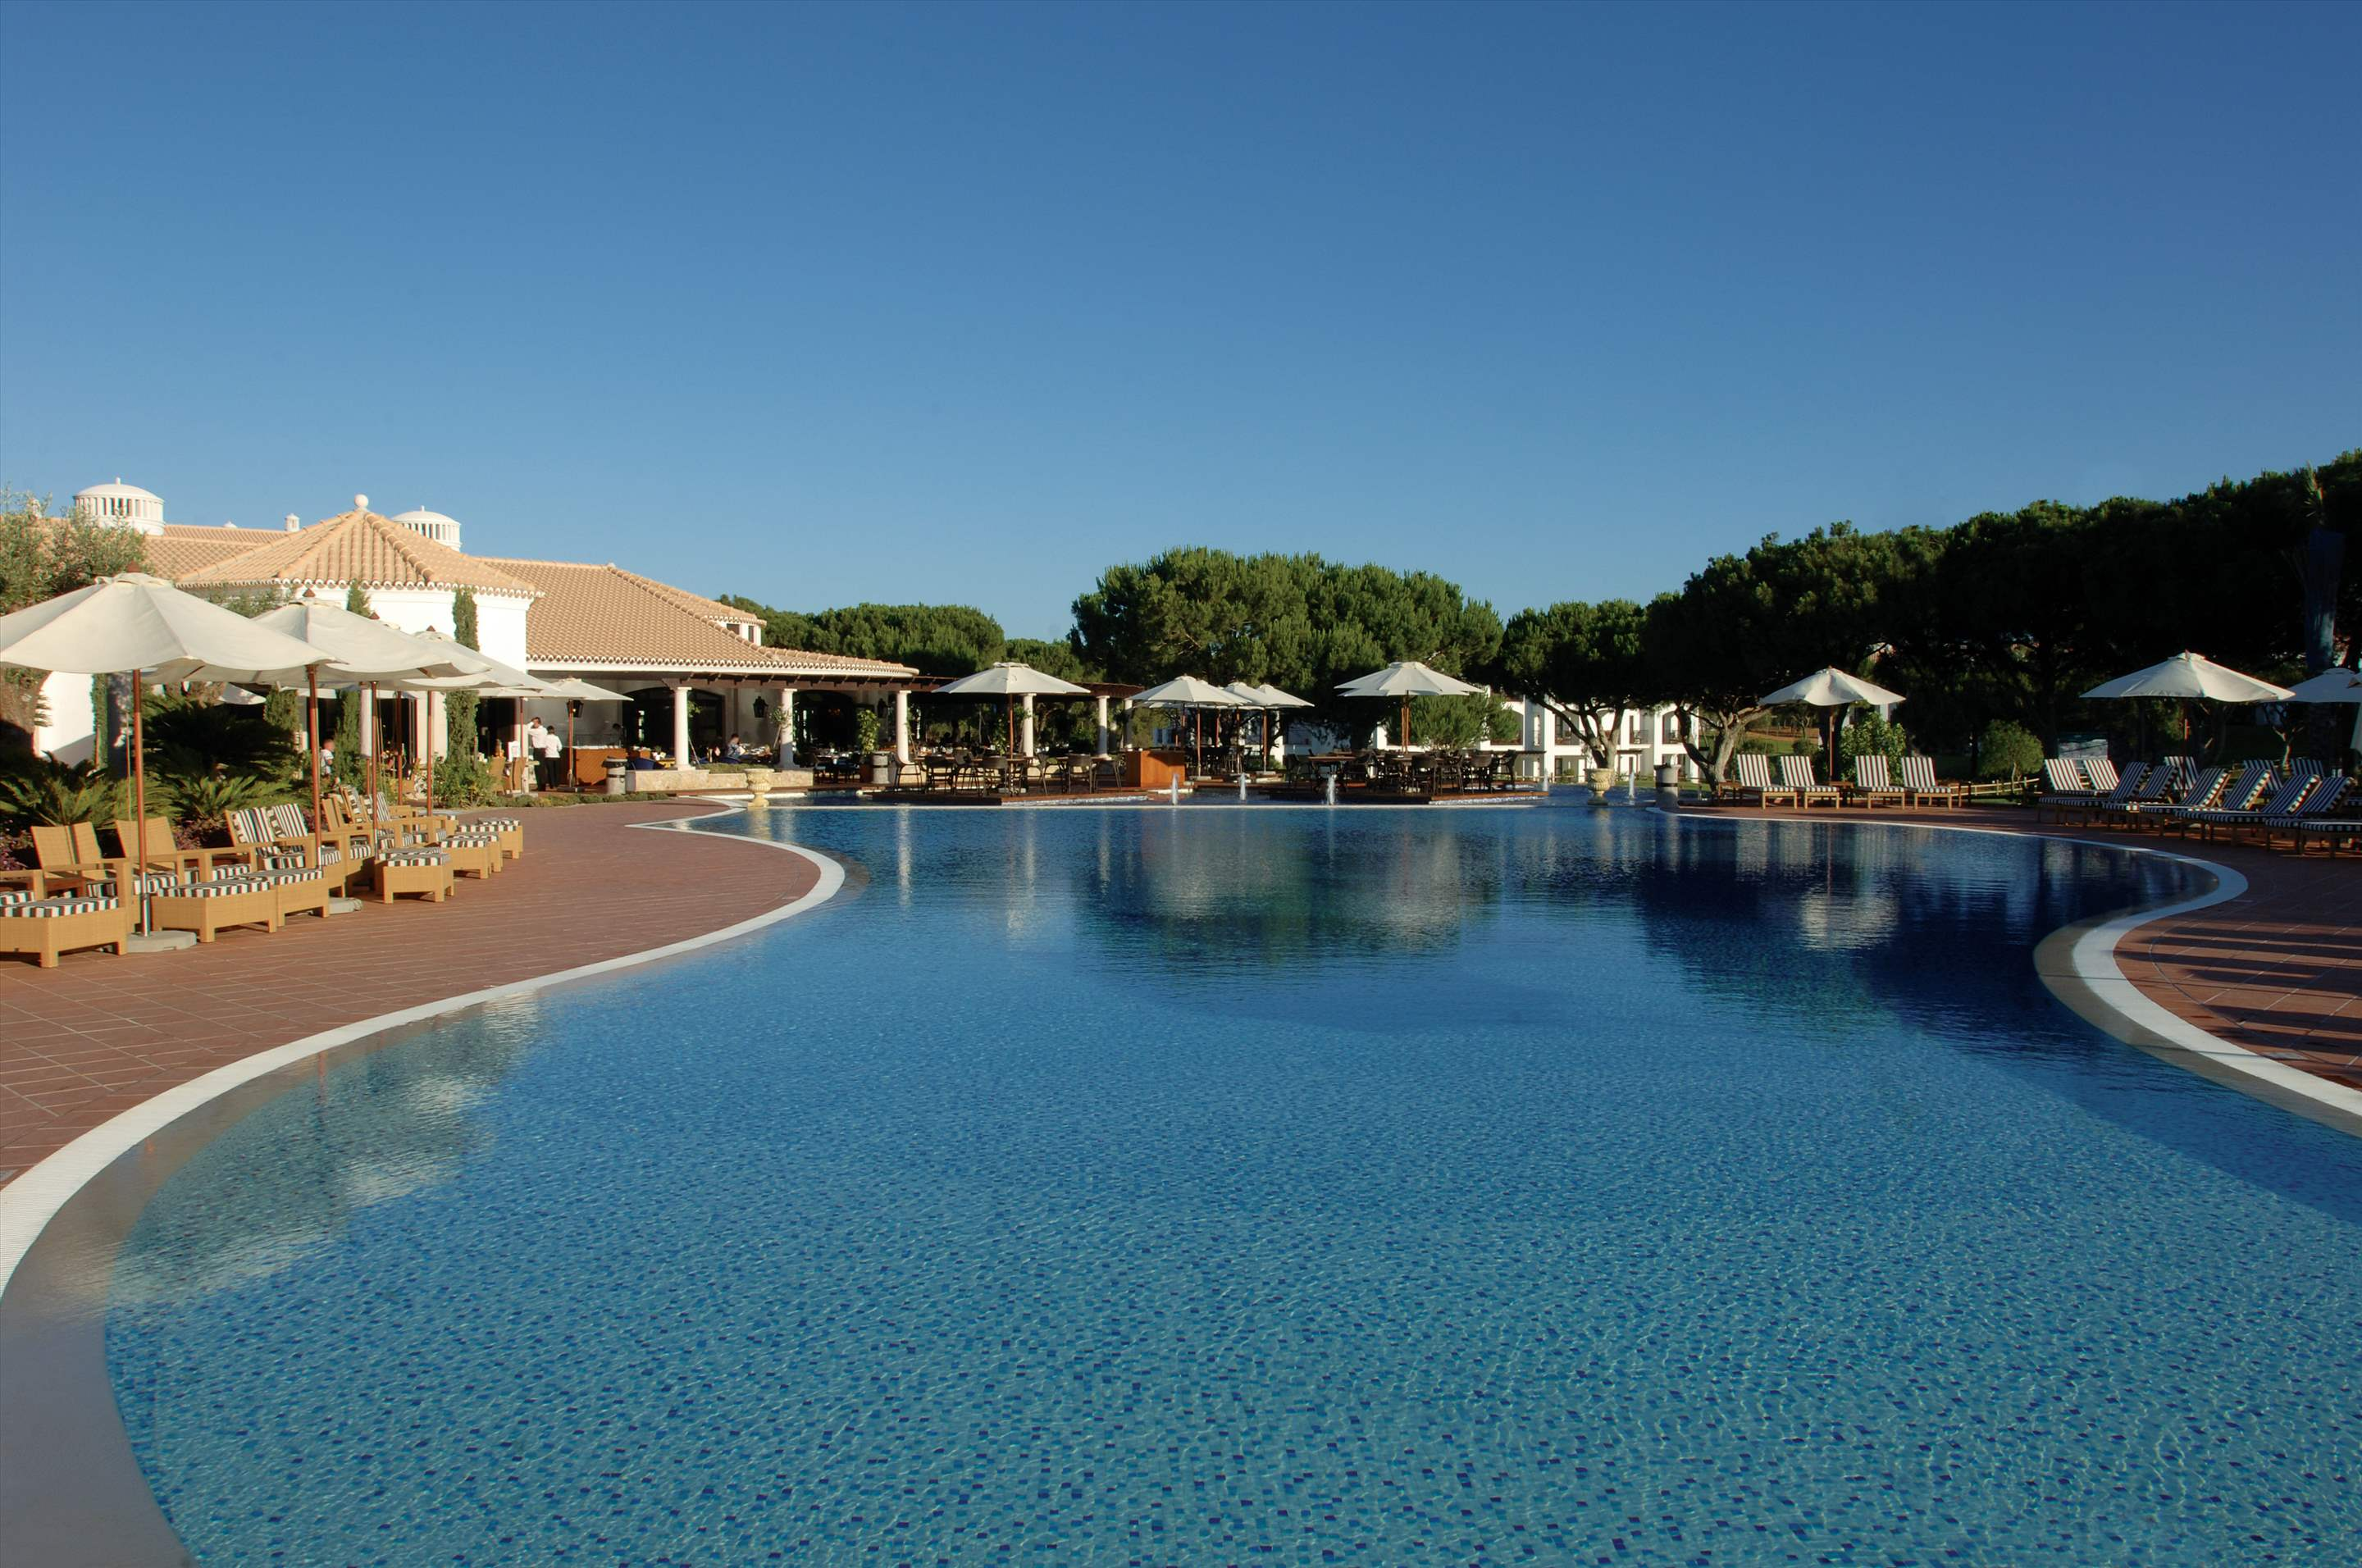 Pine Cliffs Gardens, Two Bedroom Suite, S/C Basis, 2 bedroom apartment in Pine Cliffs Resort, Algarve Photo #39